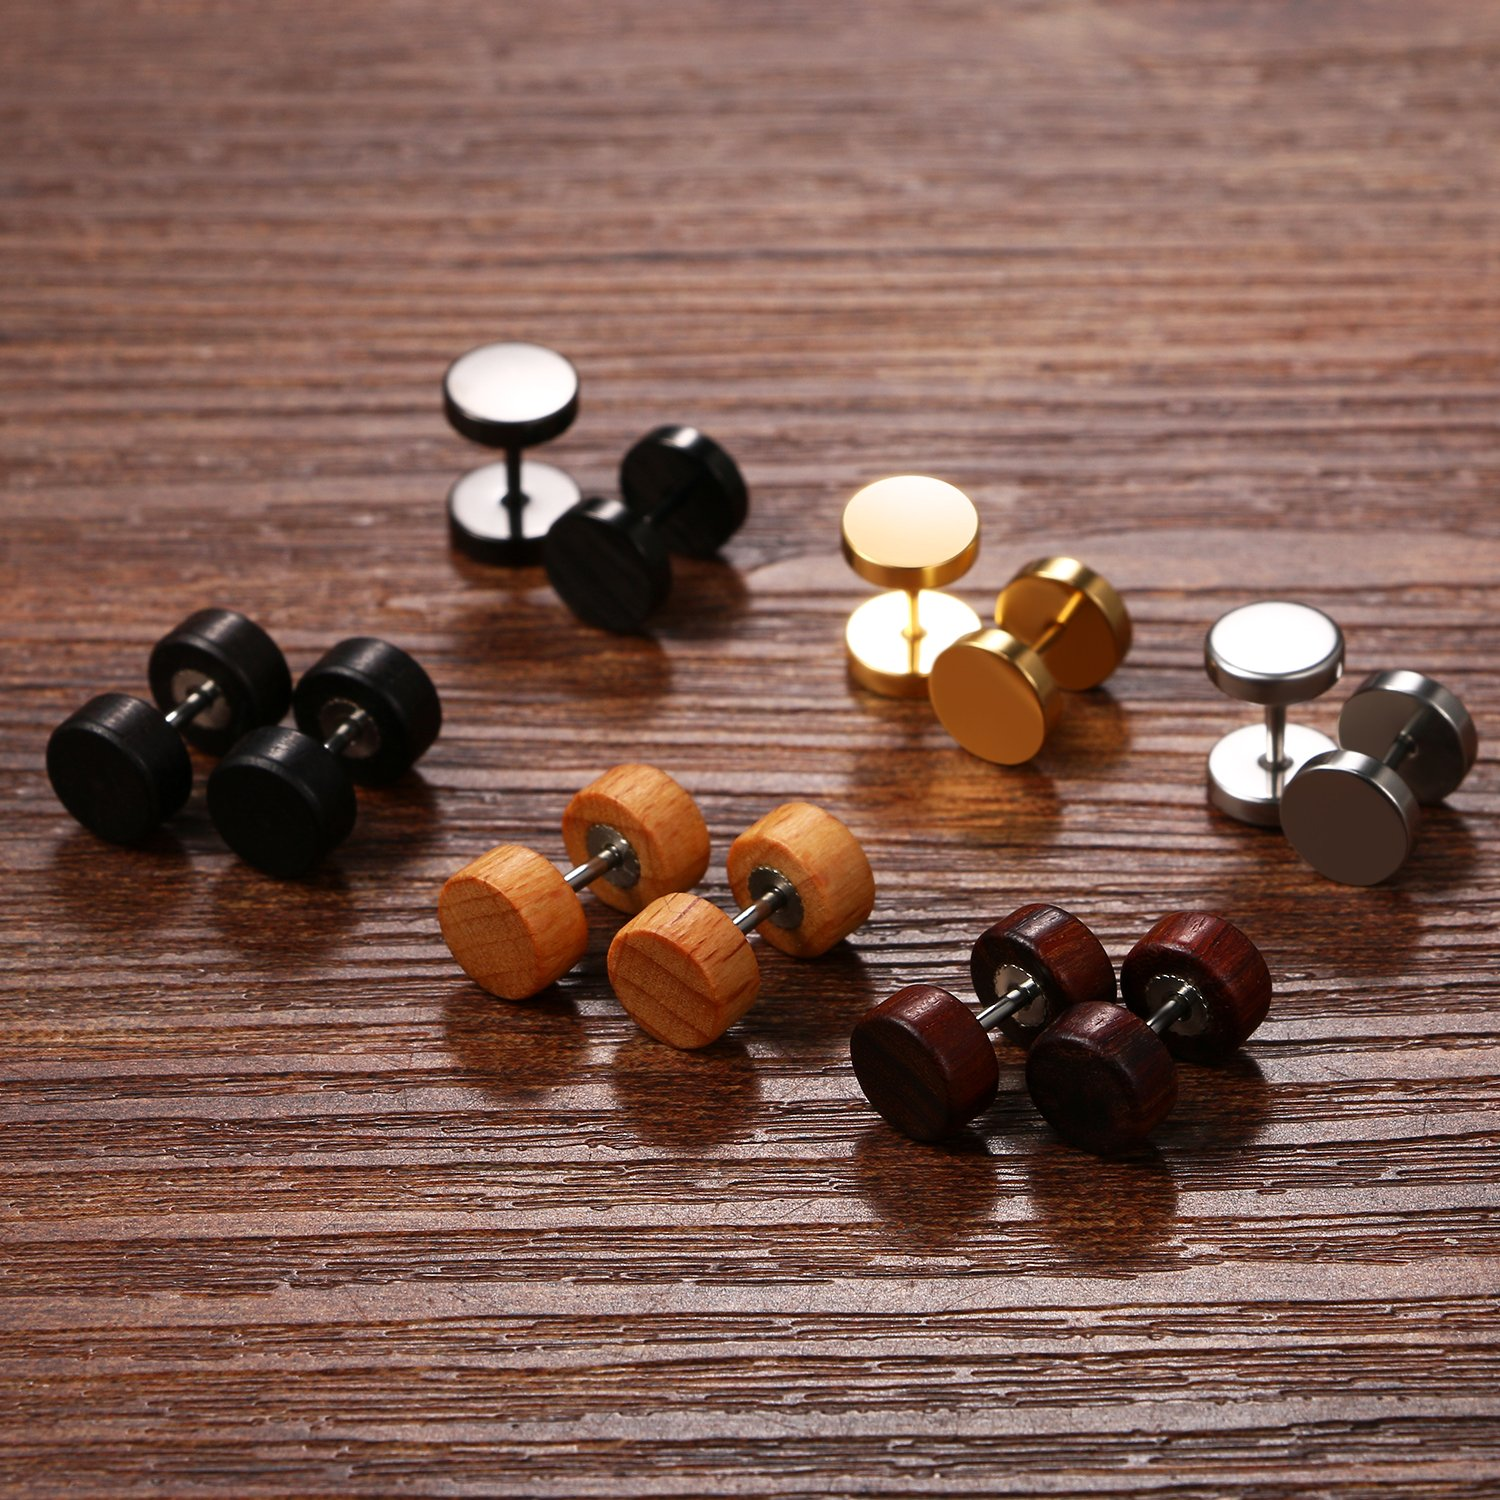 6 Pairs 8MM Mens Stainless Steel Wood Screw Stud Earrings Set,Cupimatch Ear Piercing Plugs Tunnel Earrings CU-MI-142-CA